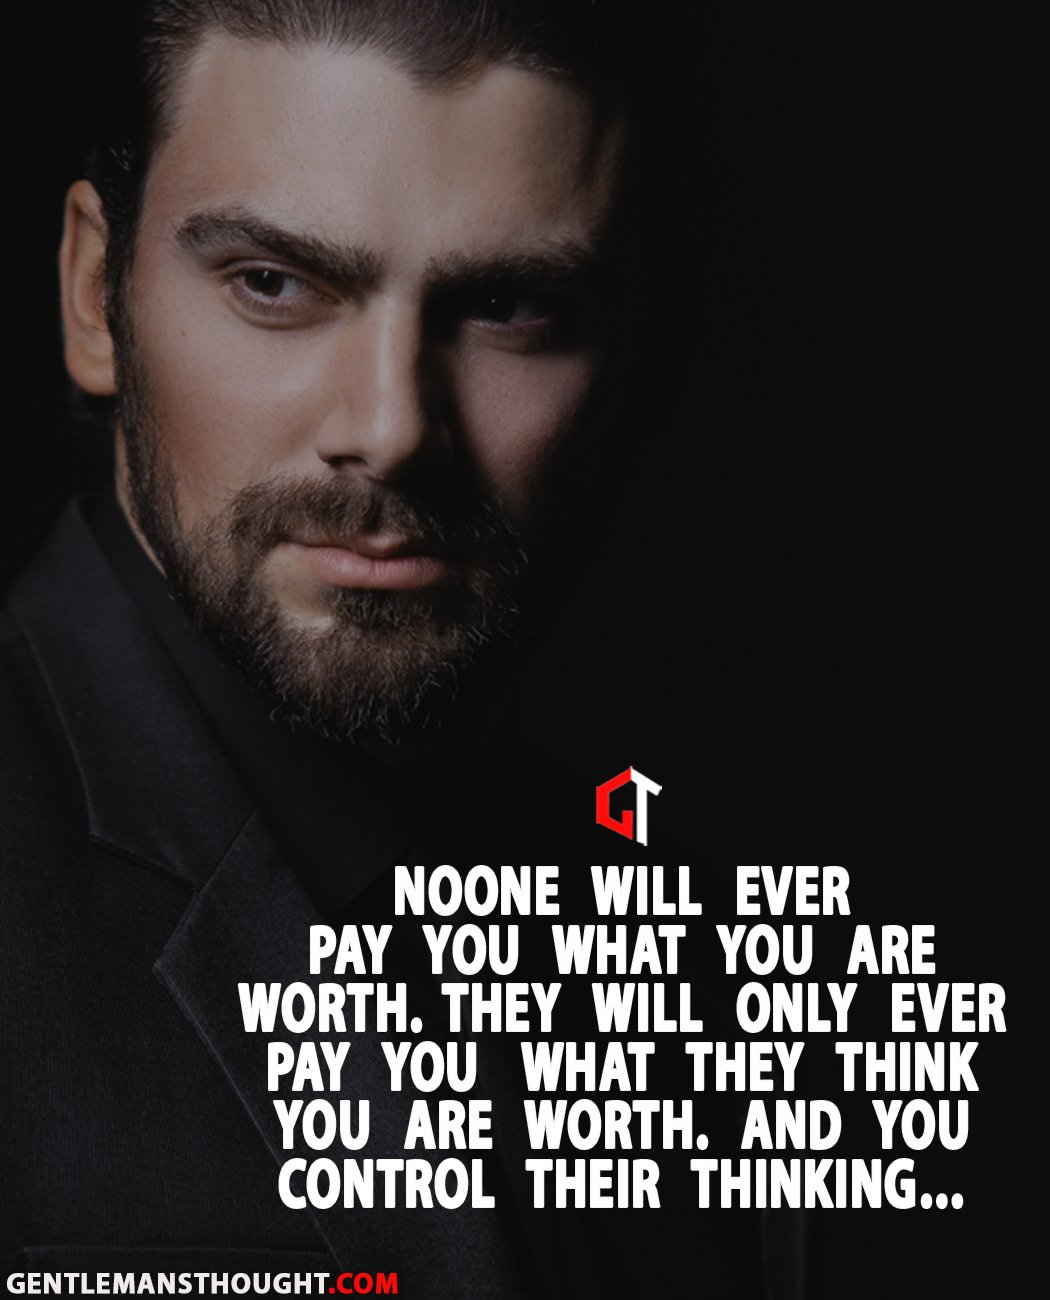 Noone will ever pay you what you are worth. They will only ever pay you what they think you are worth.